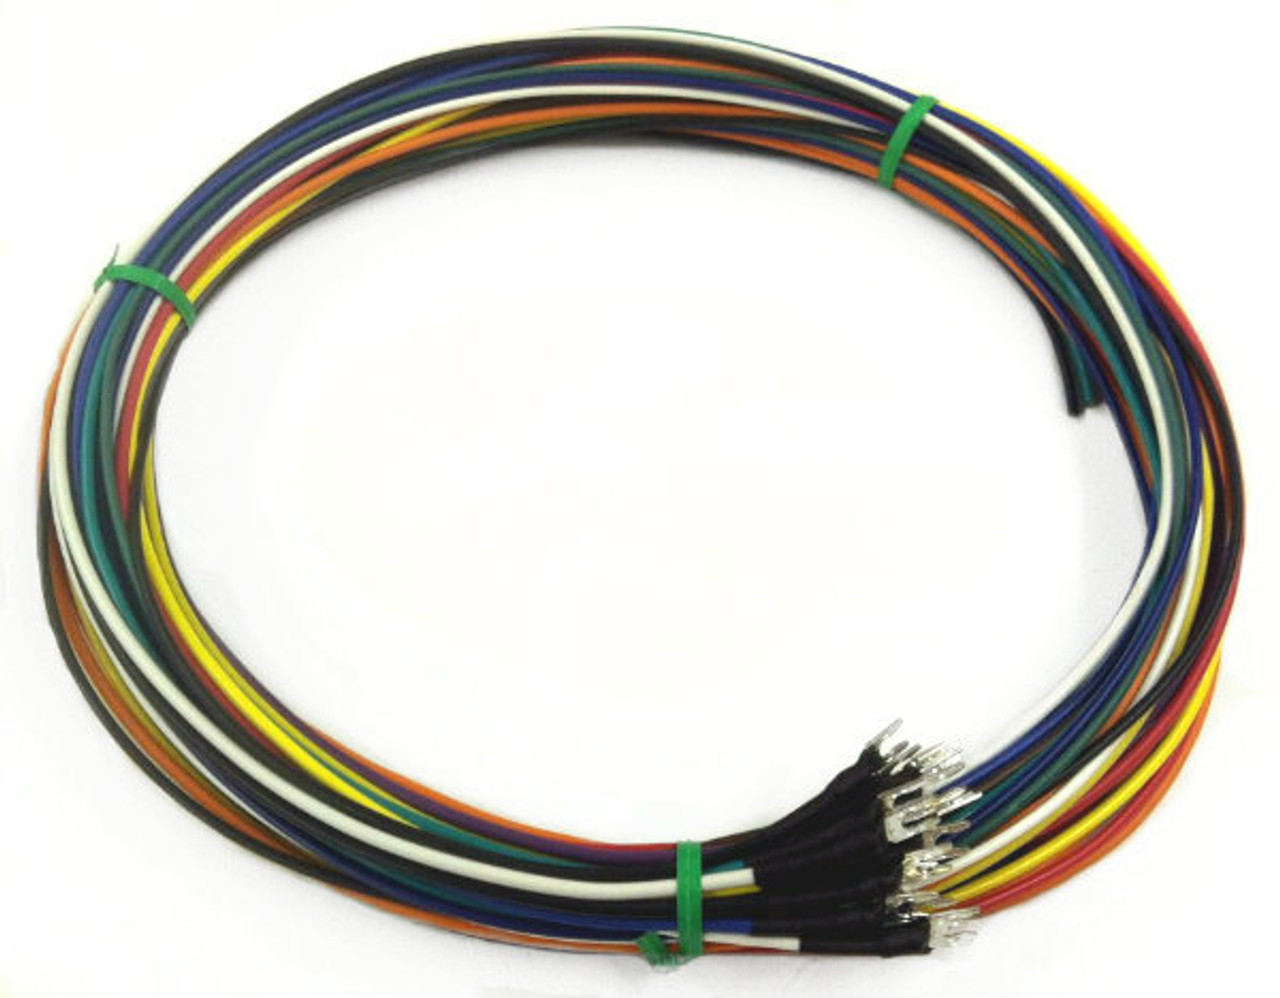 schnitz wiring harness funny bike ignition Model A Wiring Harness schnitz wiring harness